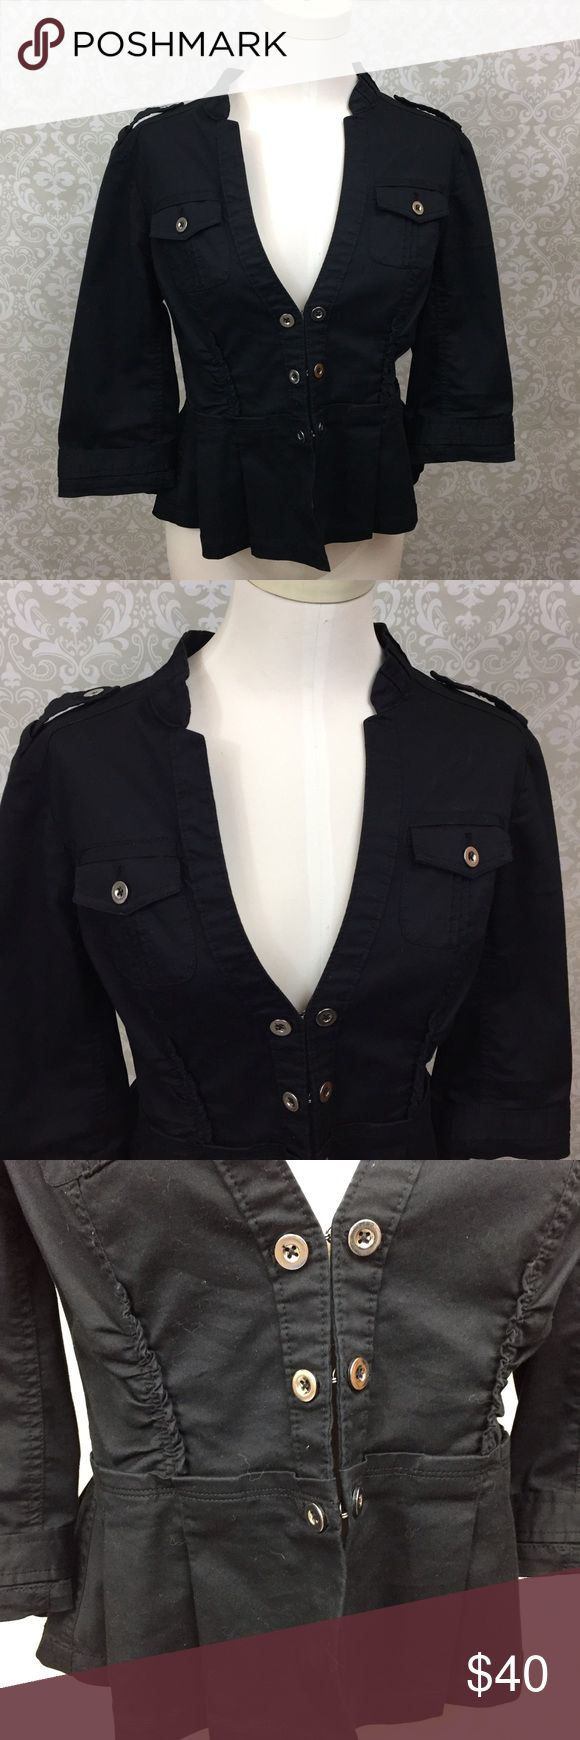 ⛱WHBM Womens Black Utility Safari Jacket Size 8 WHBM Womens Black Utility Safari Jacket Size 8  This has been gently worn with no major flaws.  Please refer to photos for more details. White House Black Market Jackets & Coats